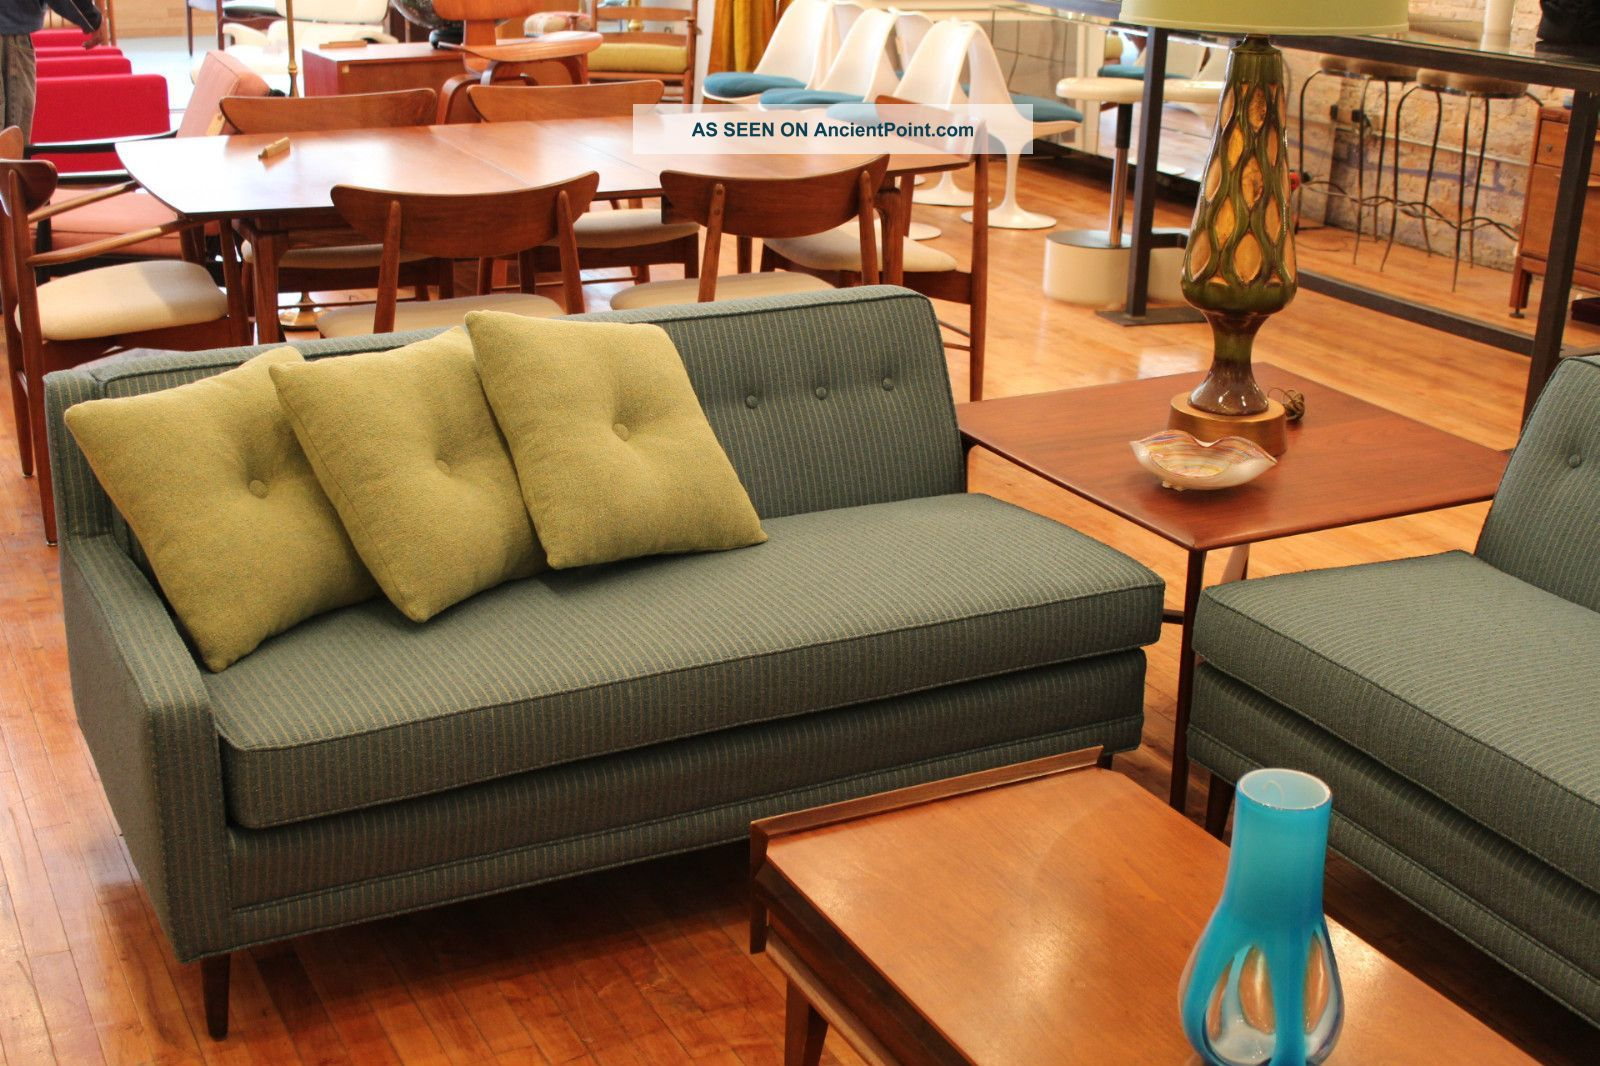 Genial Simple Retro Sectional Sofa 55 In Conversation Sofa Sectional With Retro  Sectional Sofa